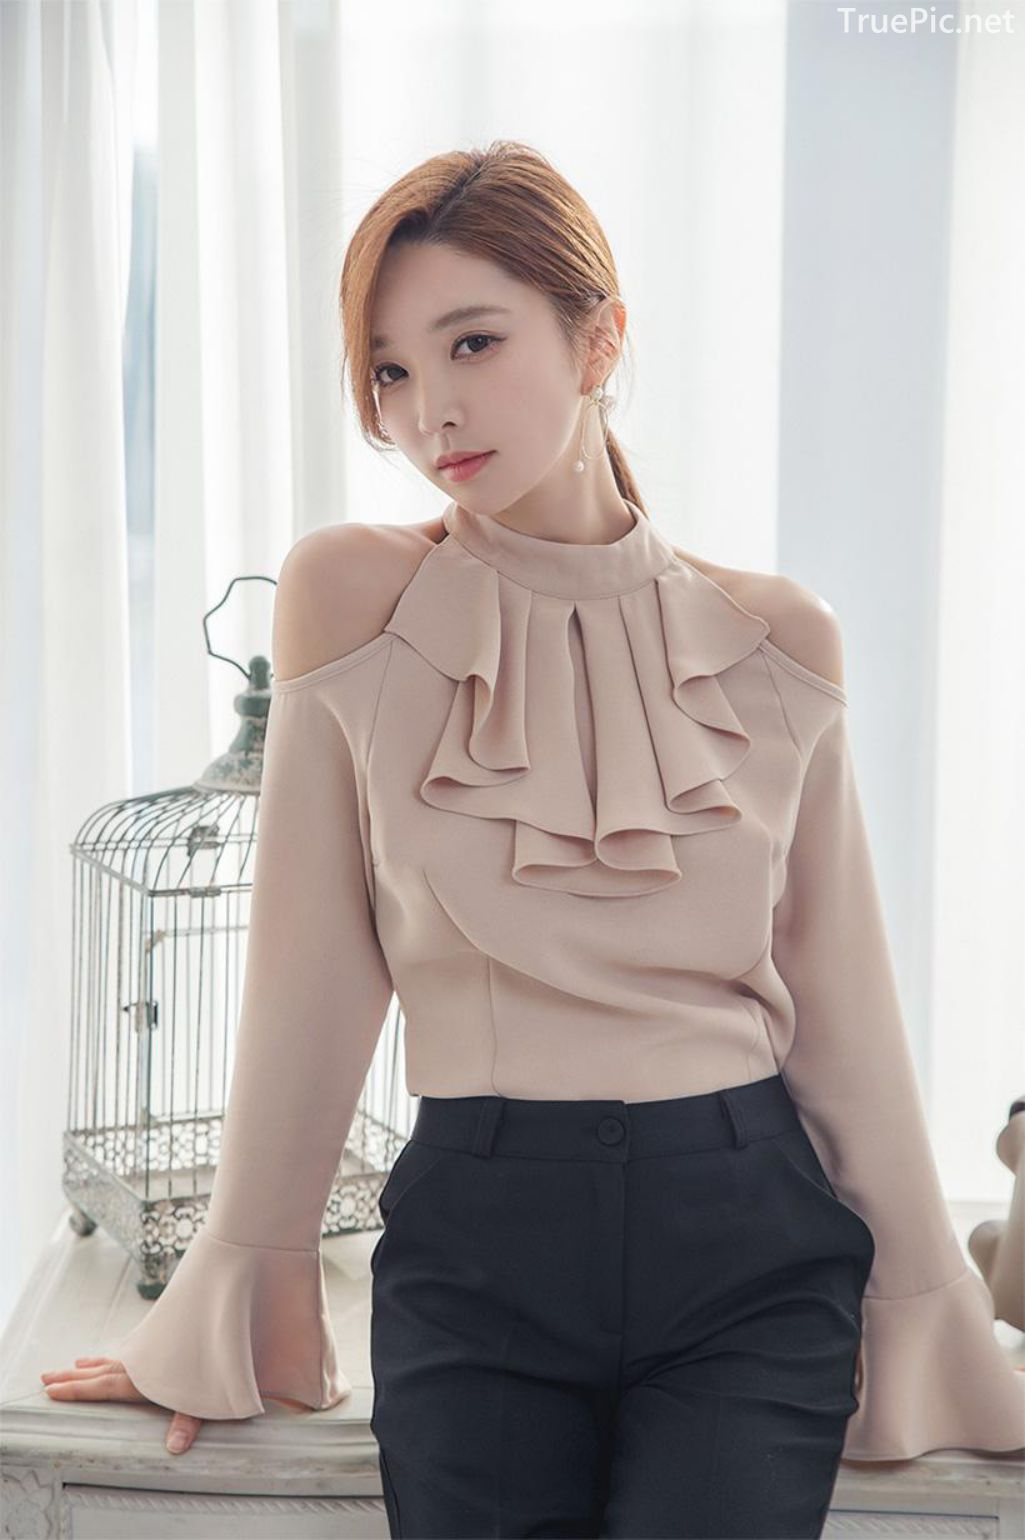 Korean-Hot-Fashion-Model-Park-Soo-Yeon-7-Outfit-sets-for-a-week-TruePic.net- Picture-8